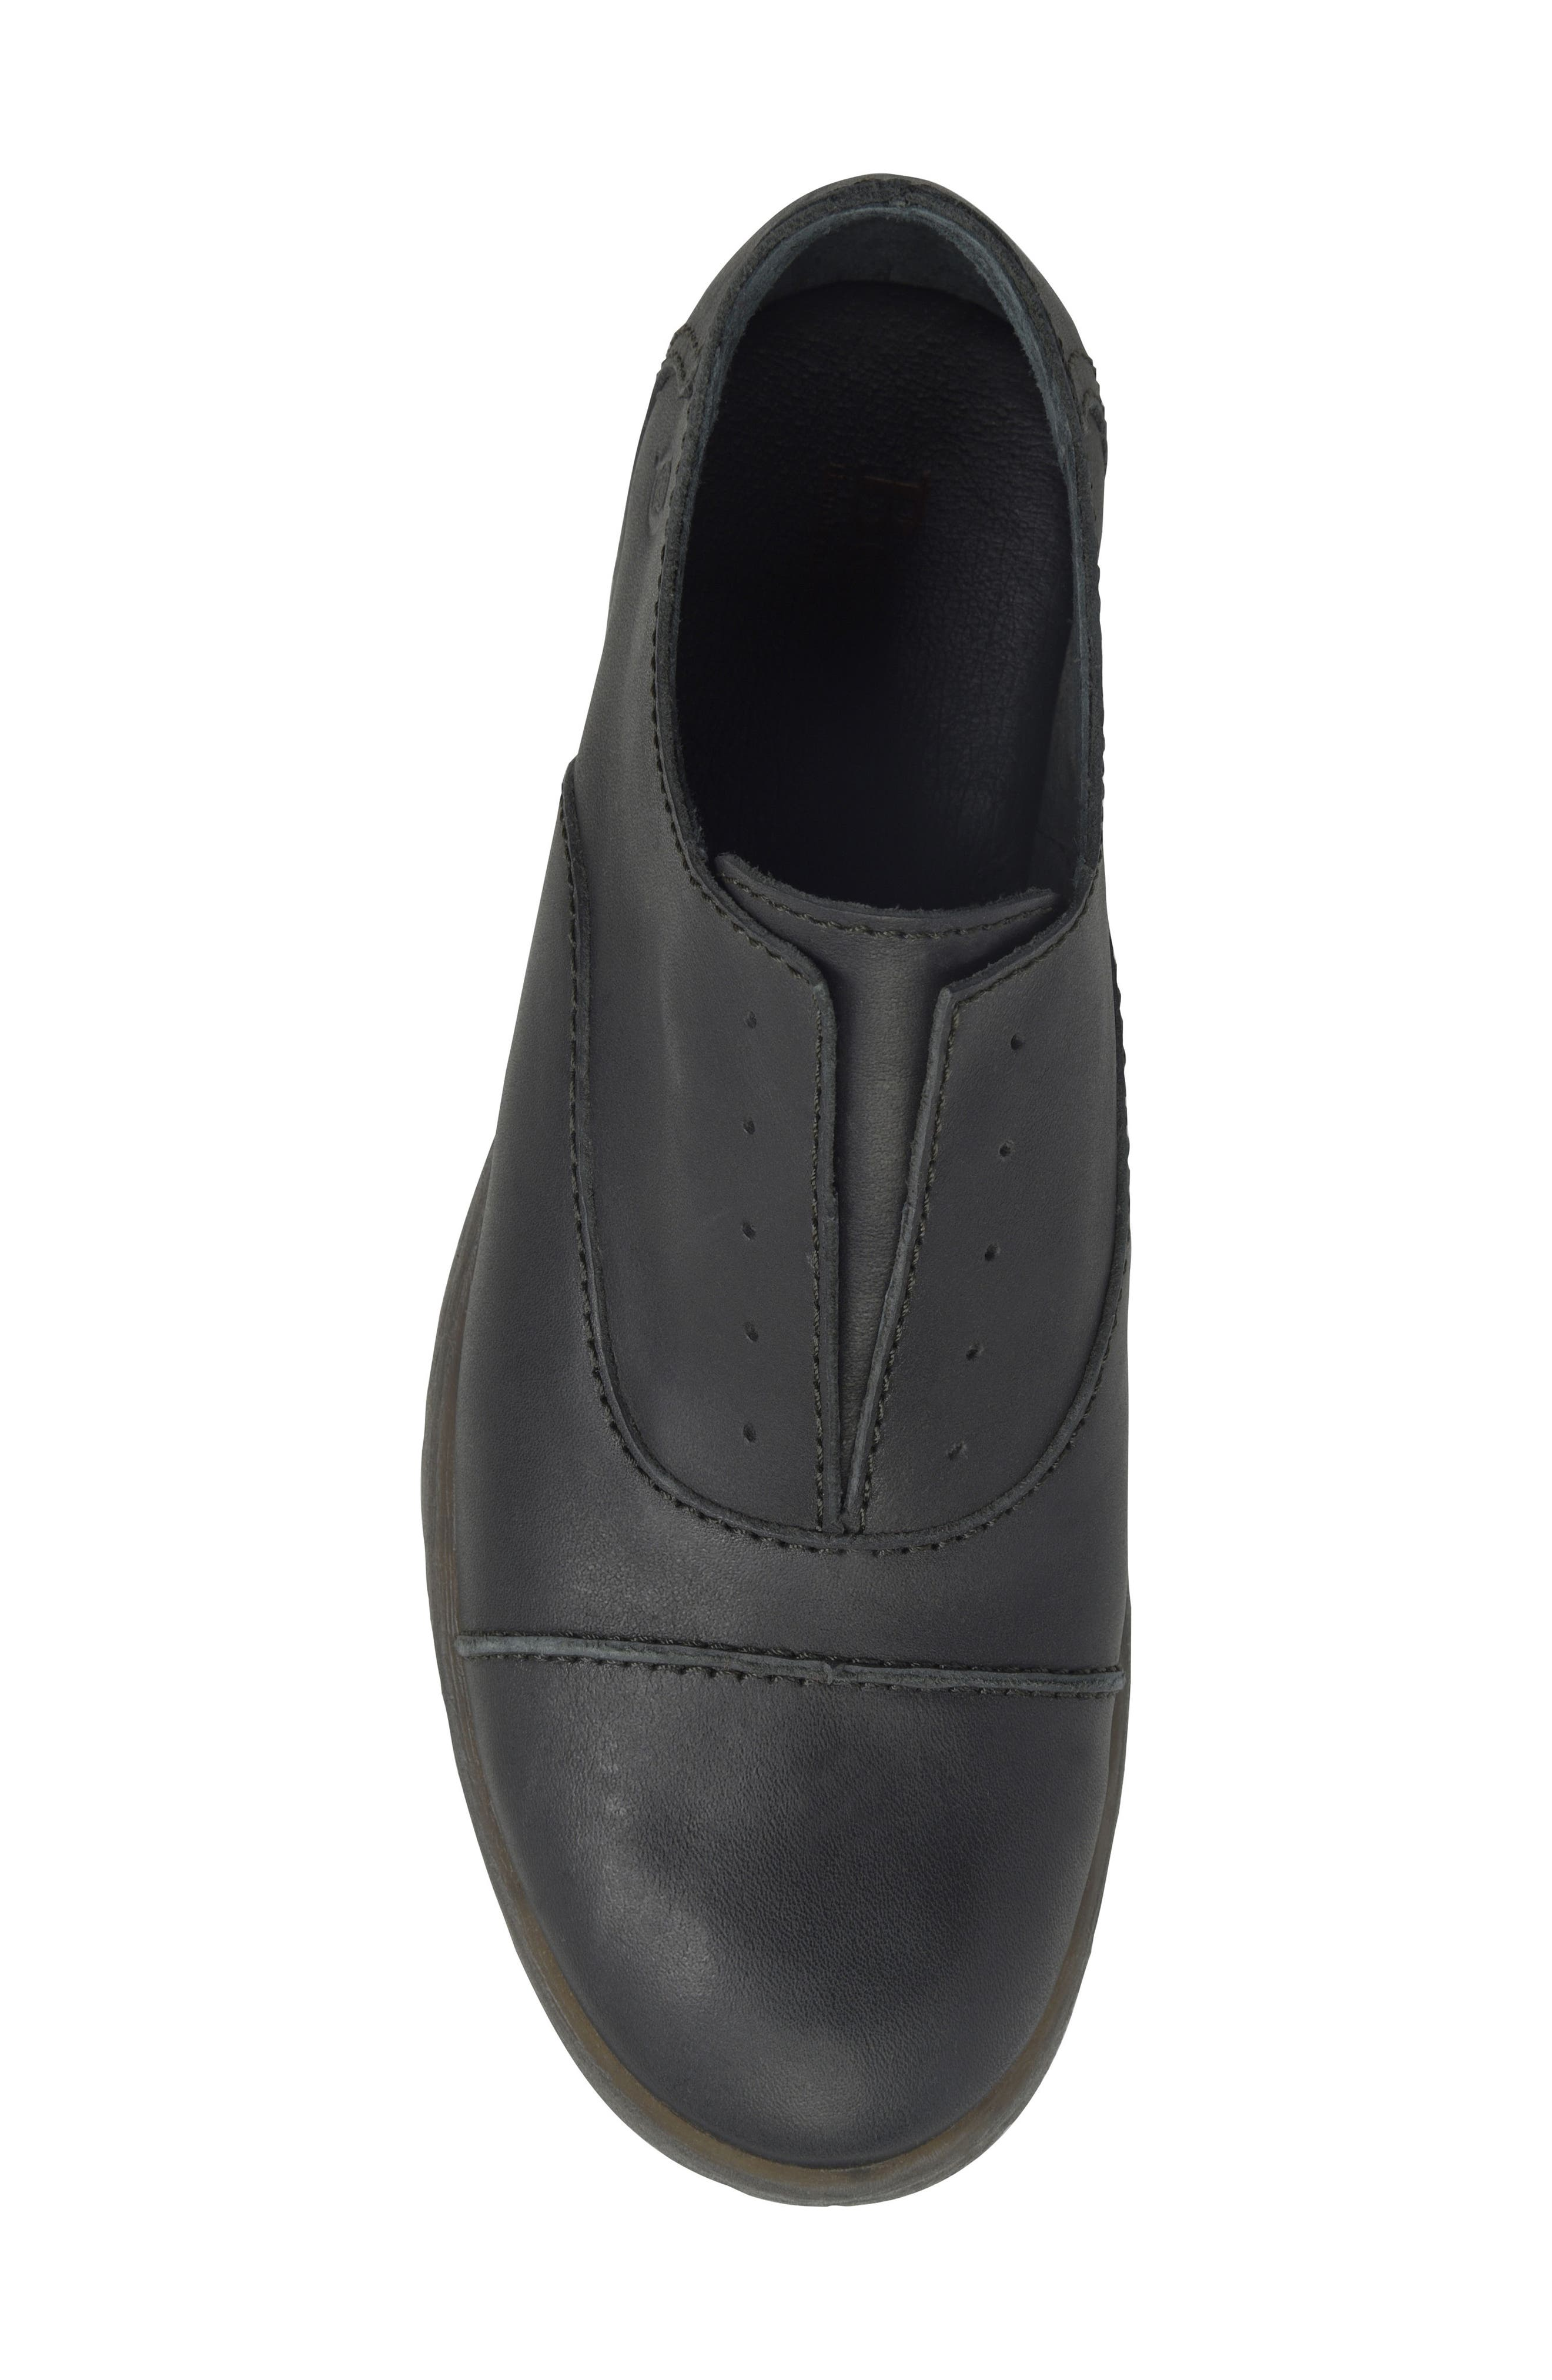 BØRN,                             Forato Slip-On Oxford,                             Alternate thumbnail 5, color,                             001